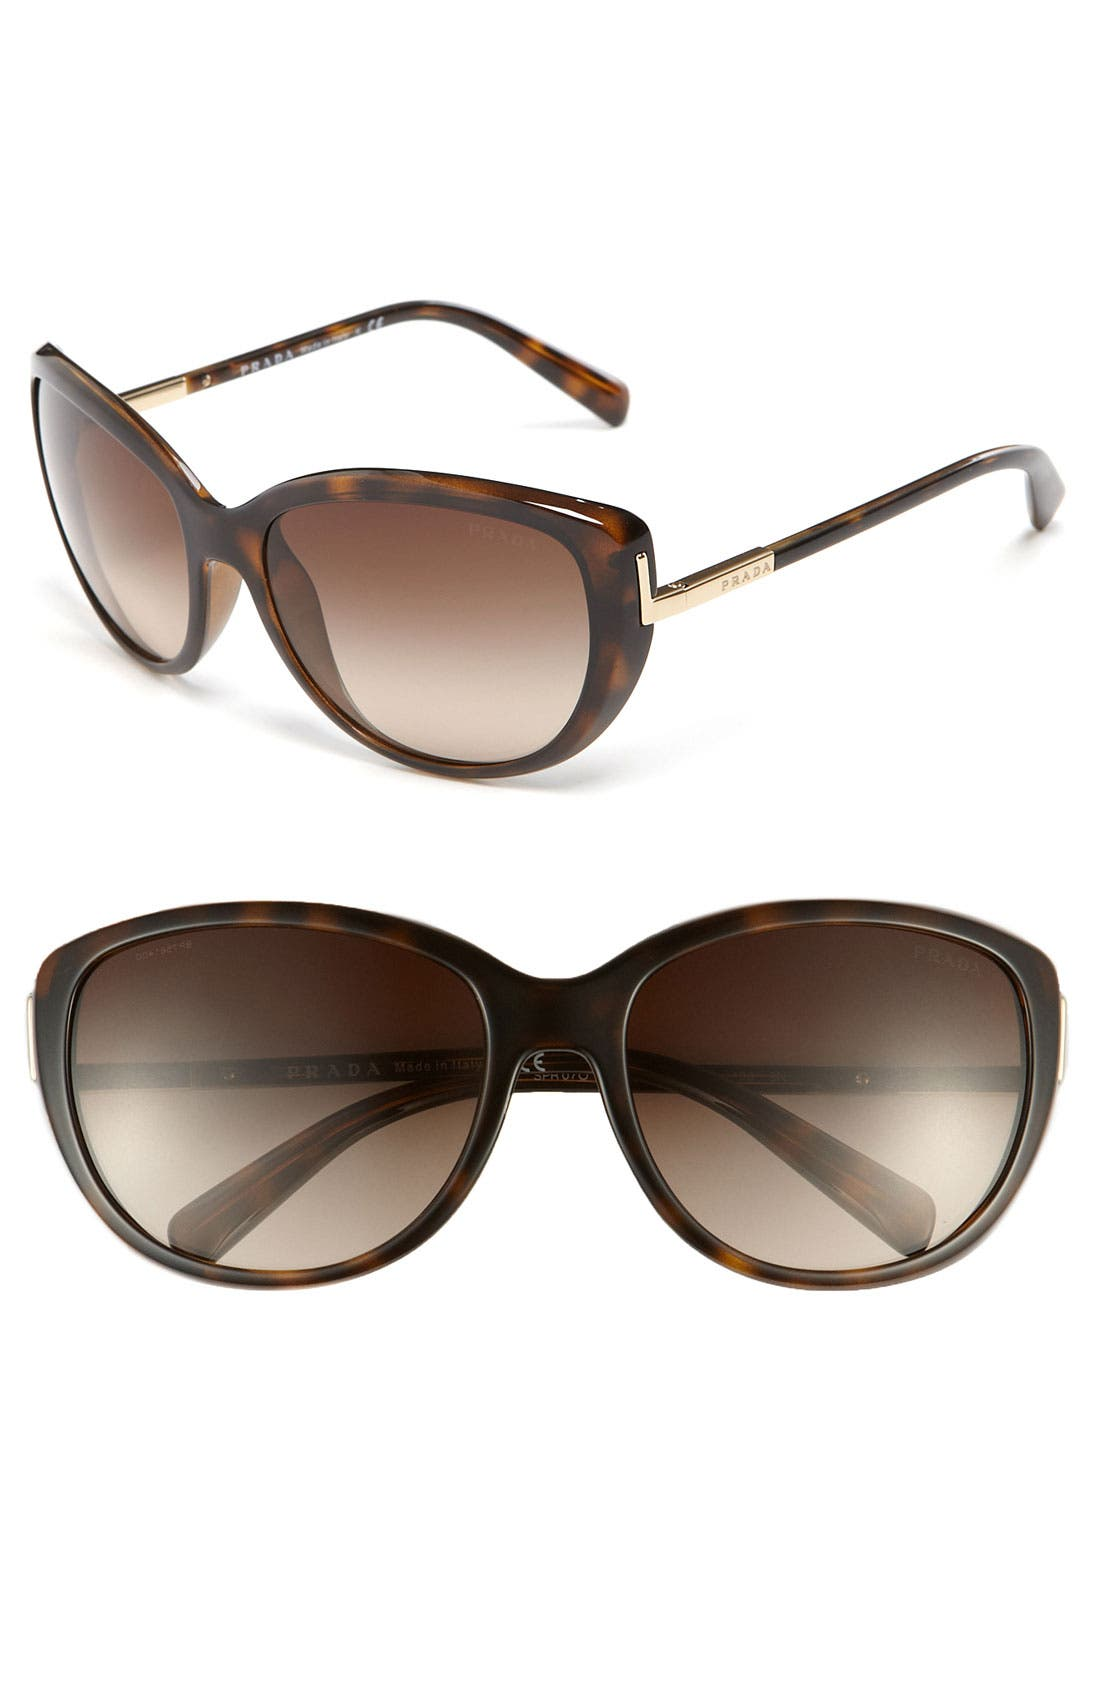 Alternate Image 1 Selected - Prada 59mm Retro Sunglasses